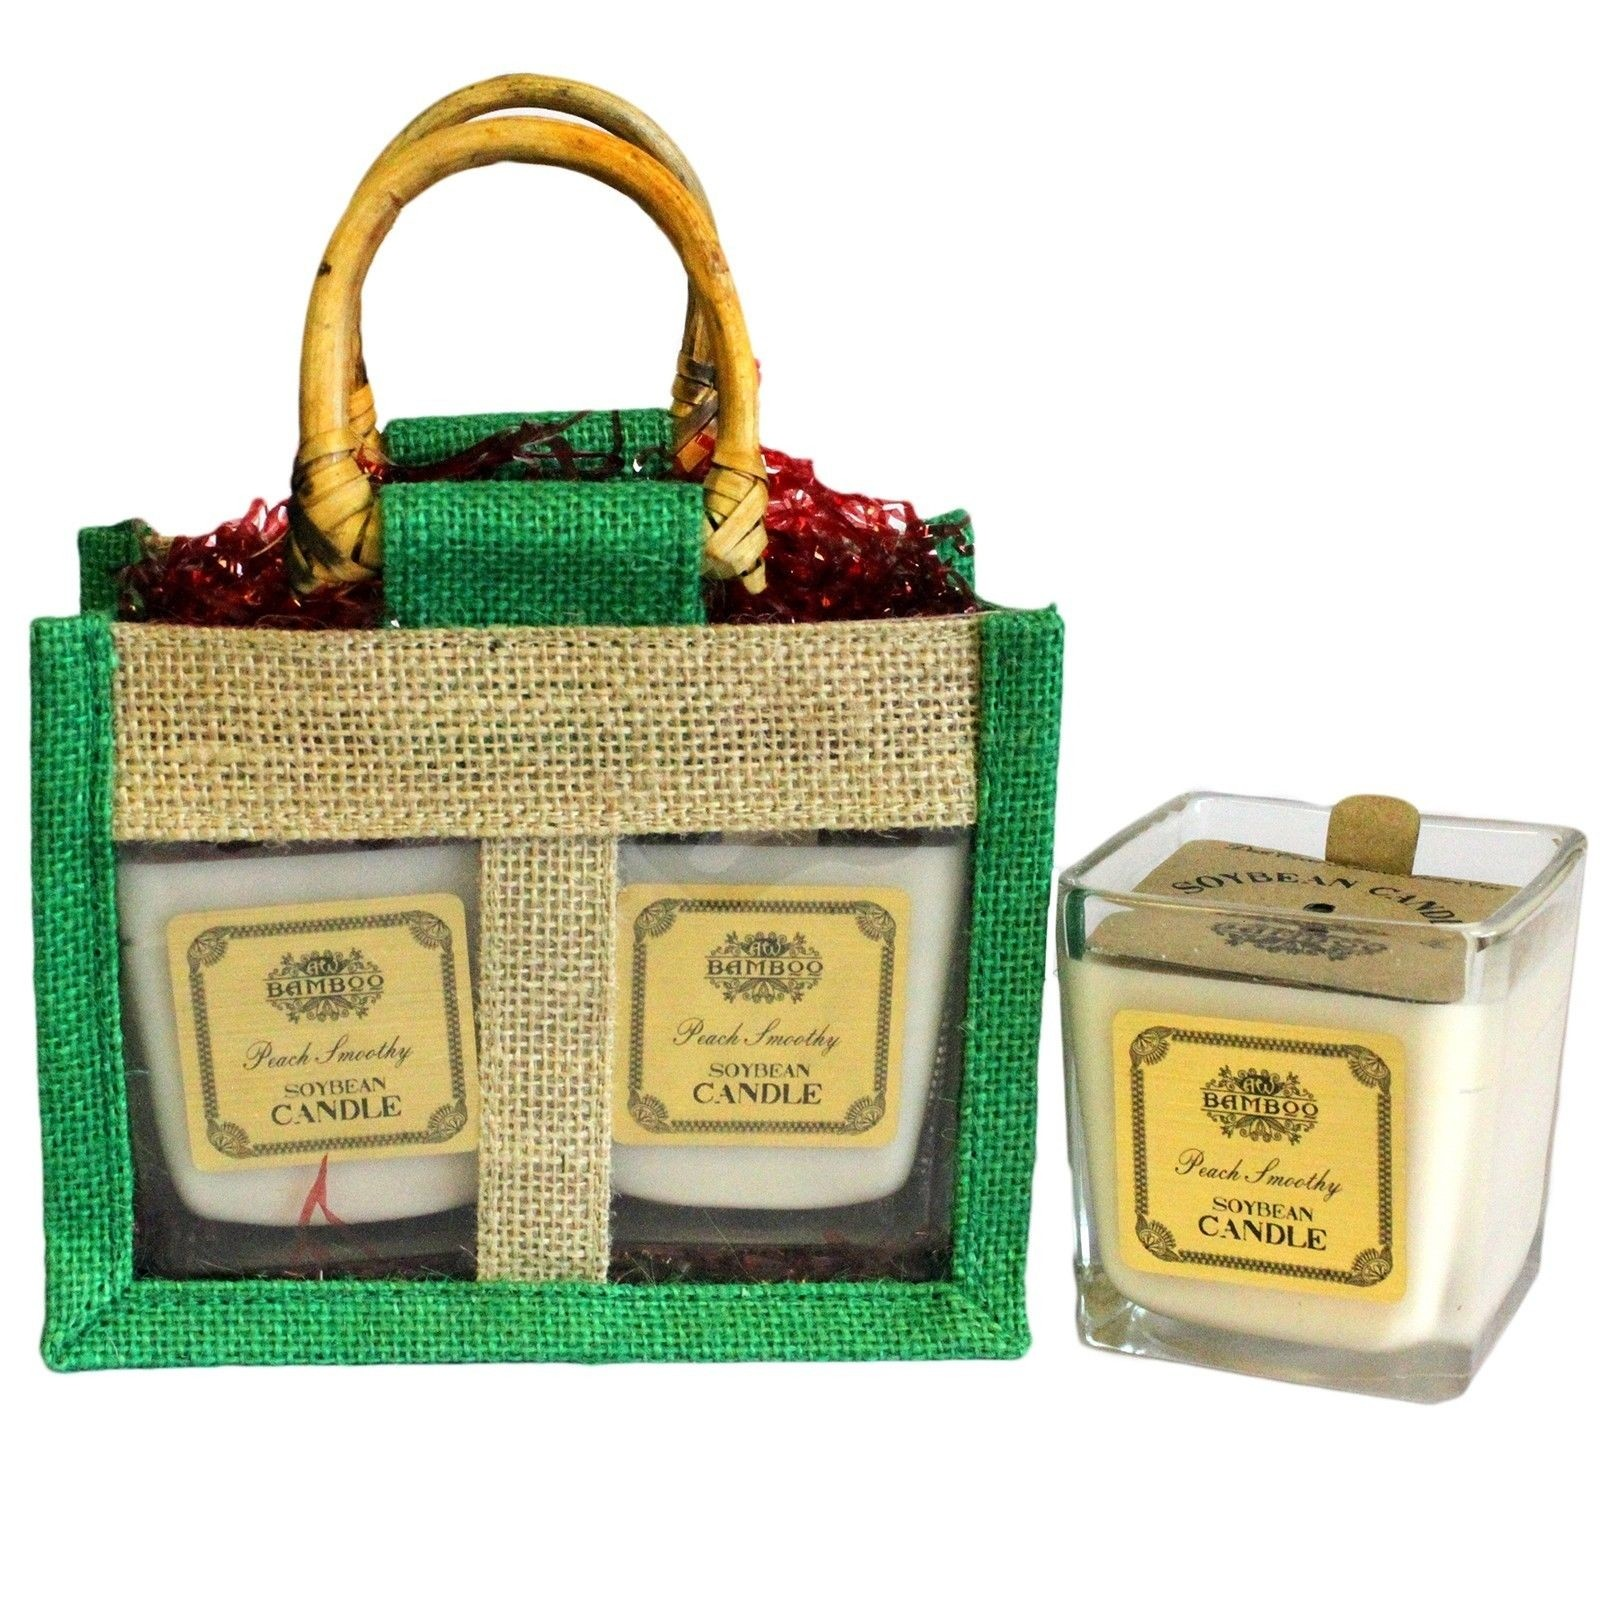 Soy Fruity Candles in Jute Bag Gift Set